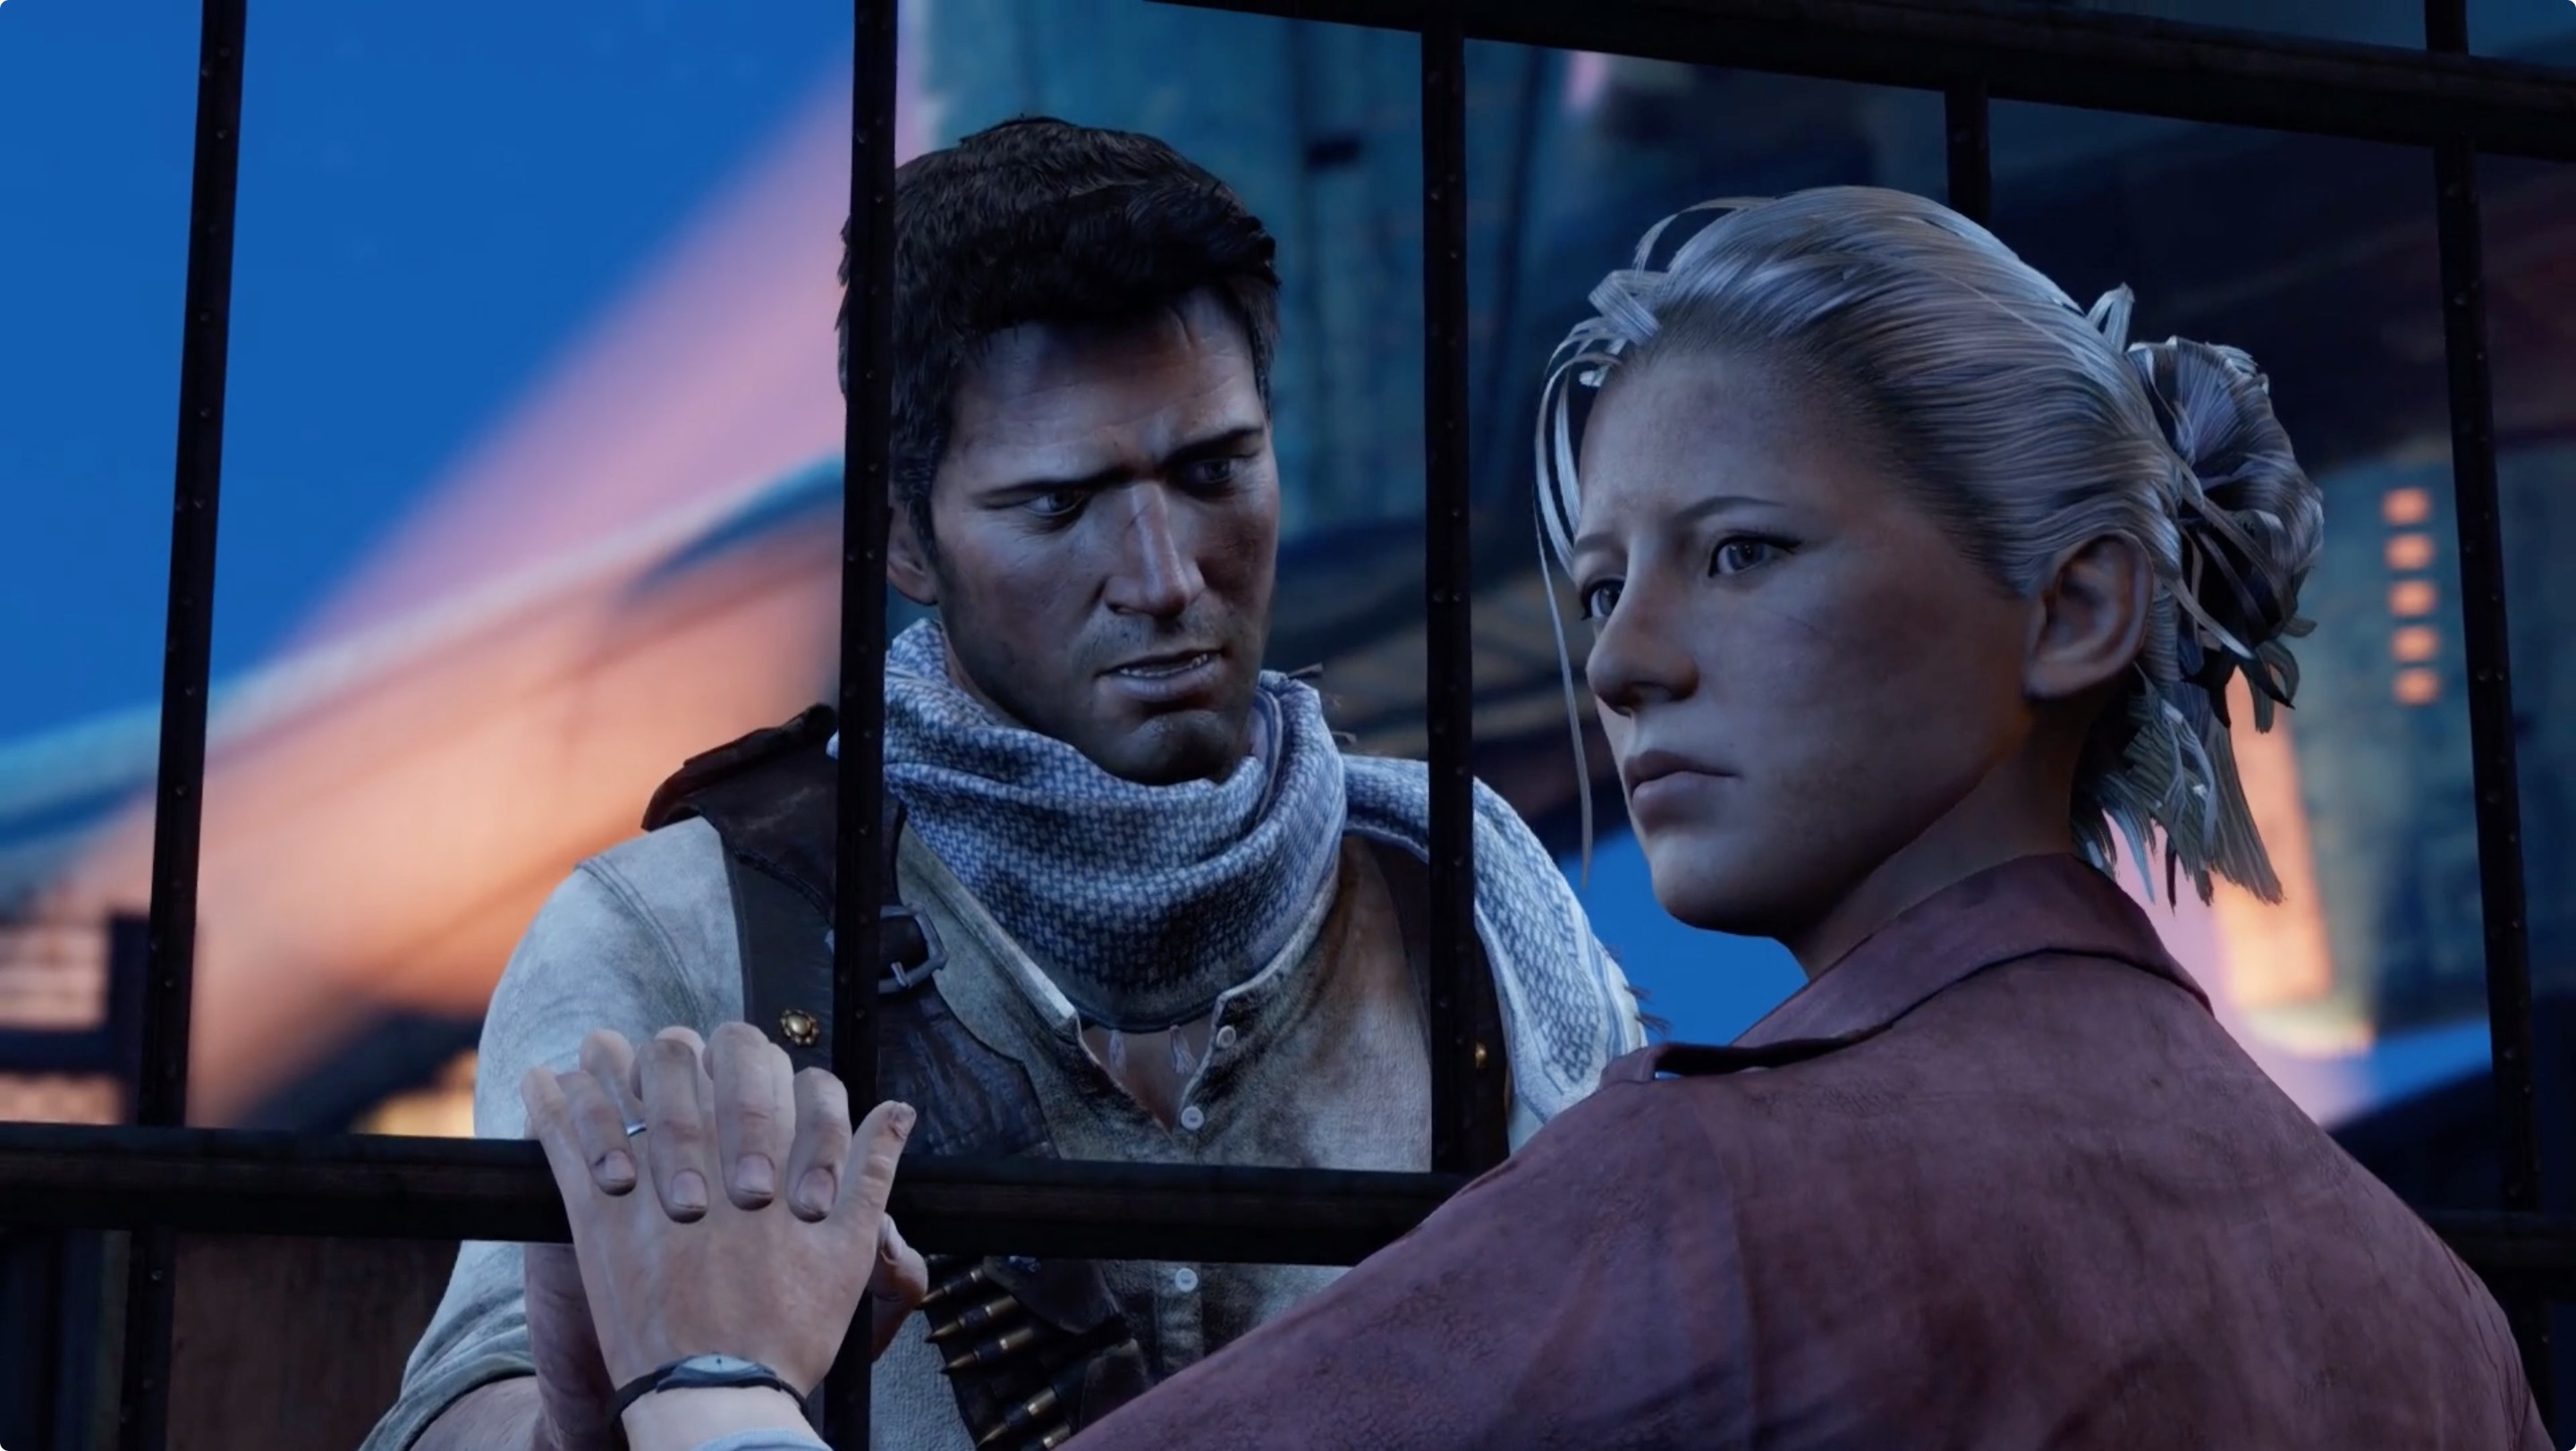 Uncharted 3: Drake's Deception 'One Shot at This' treasure locations guide